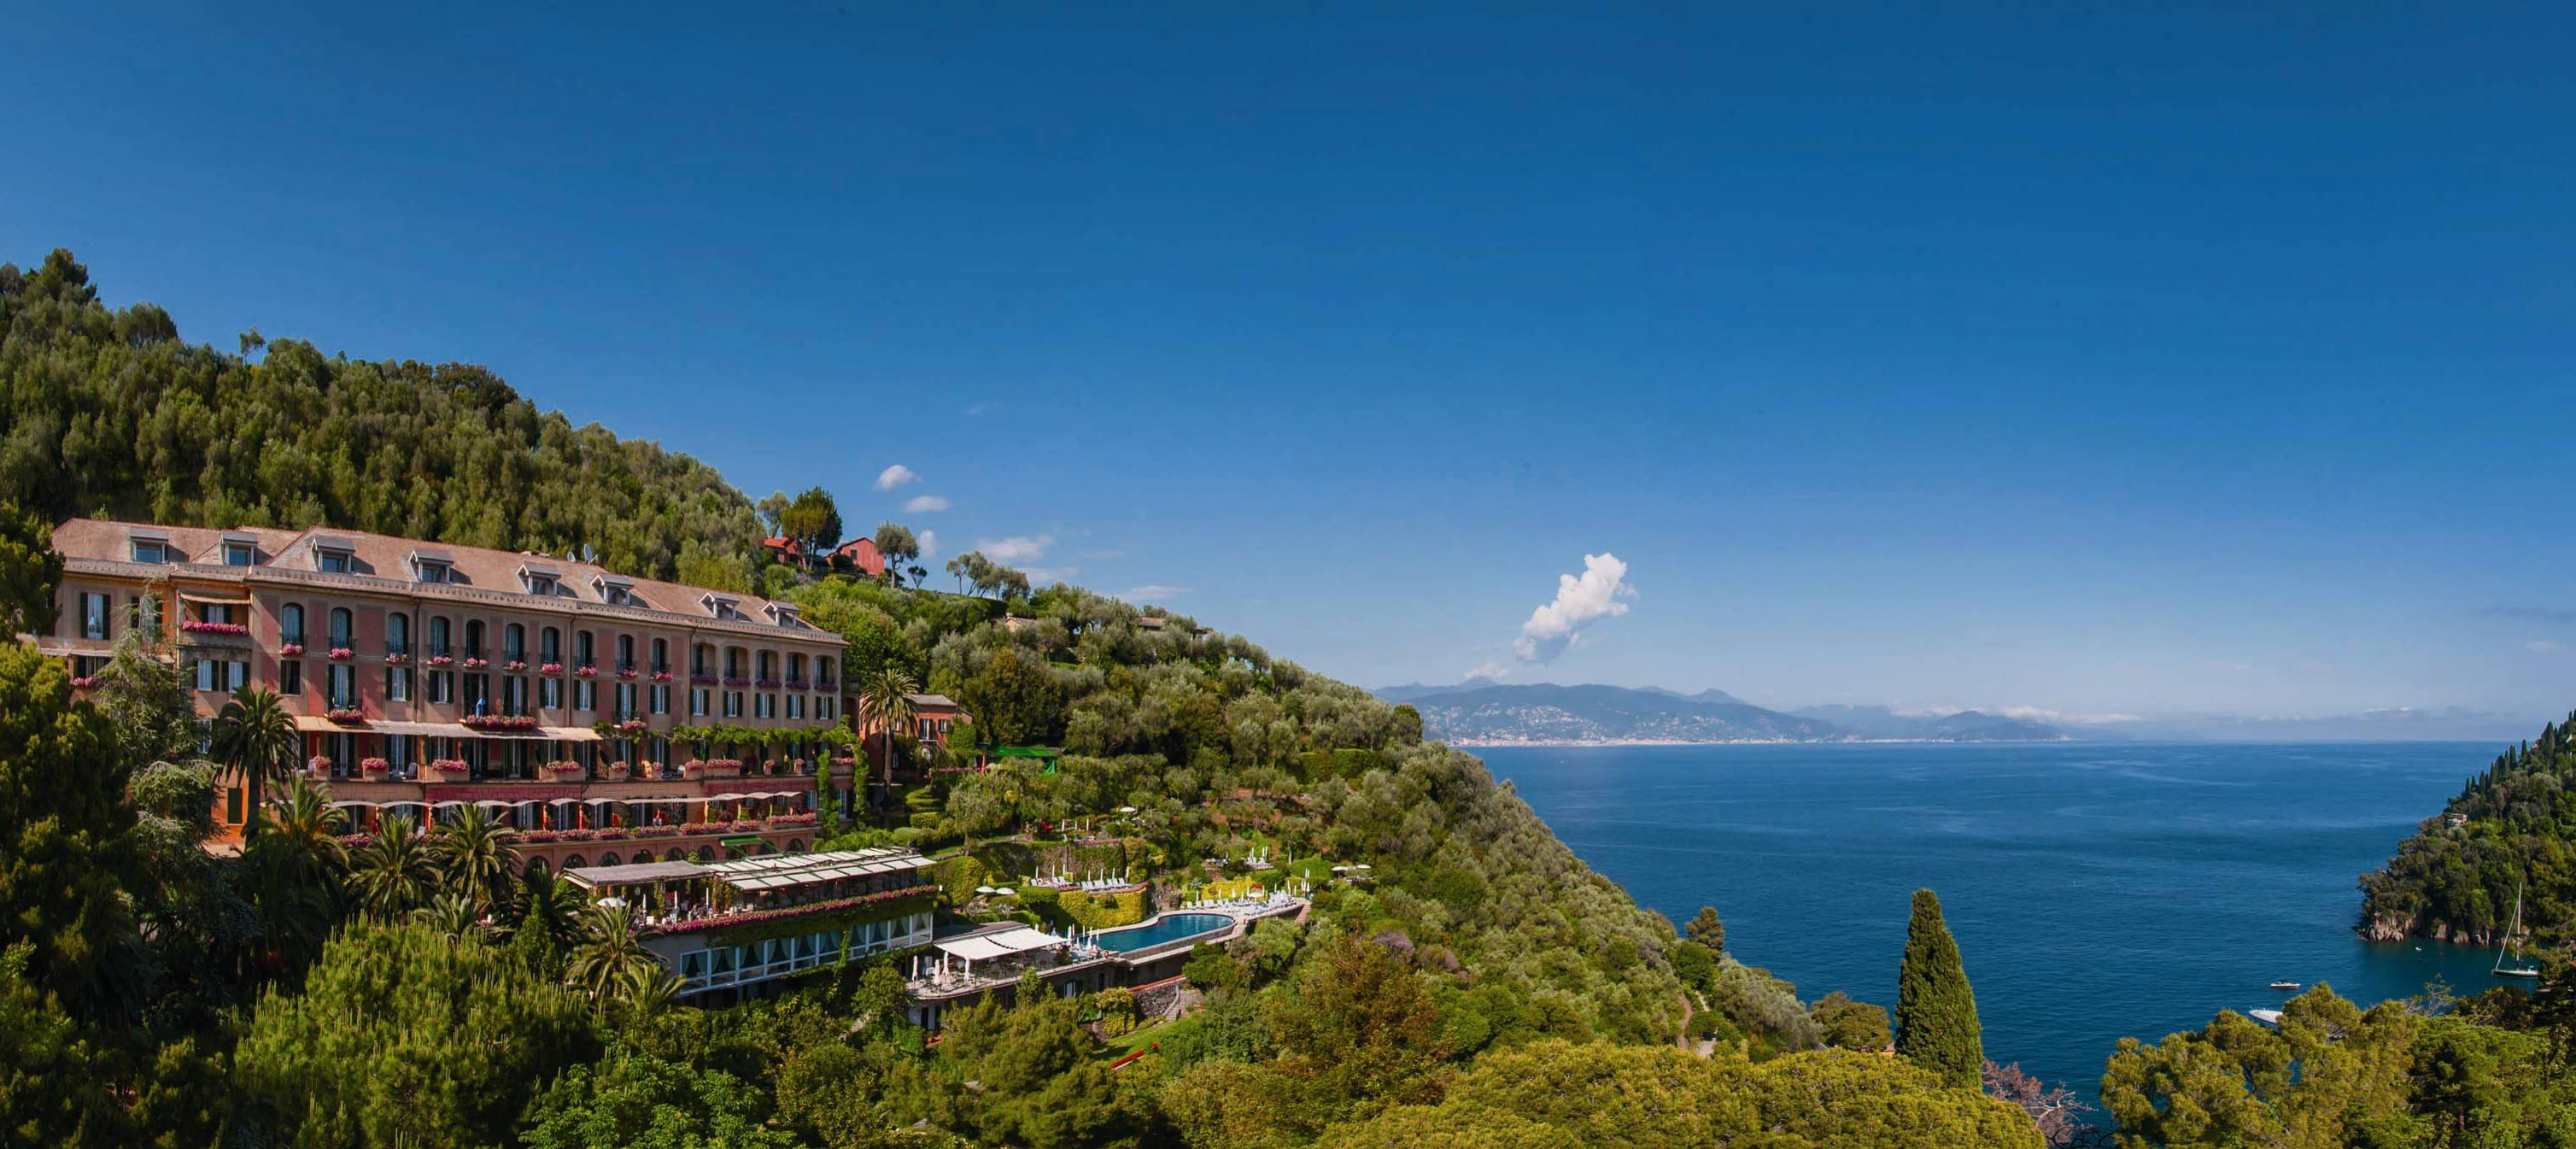 Hotels In The Cinque Terre Splendido Portofino